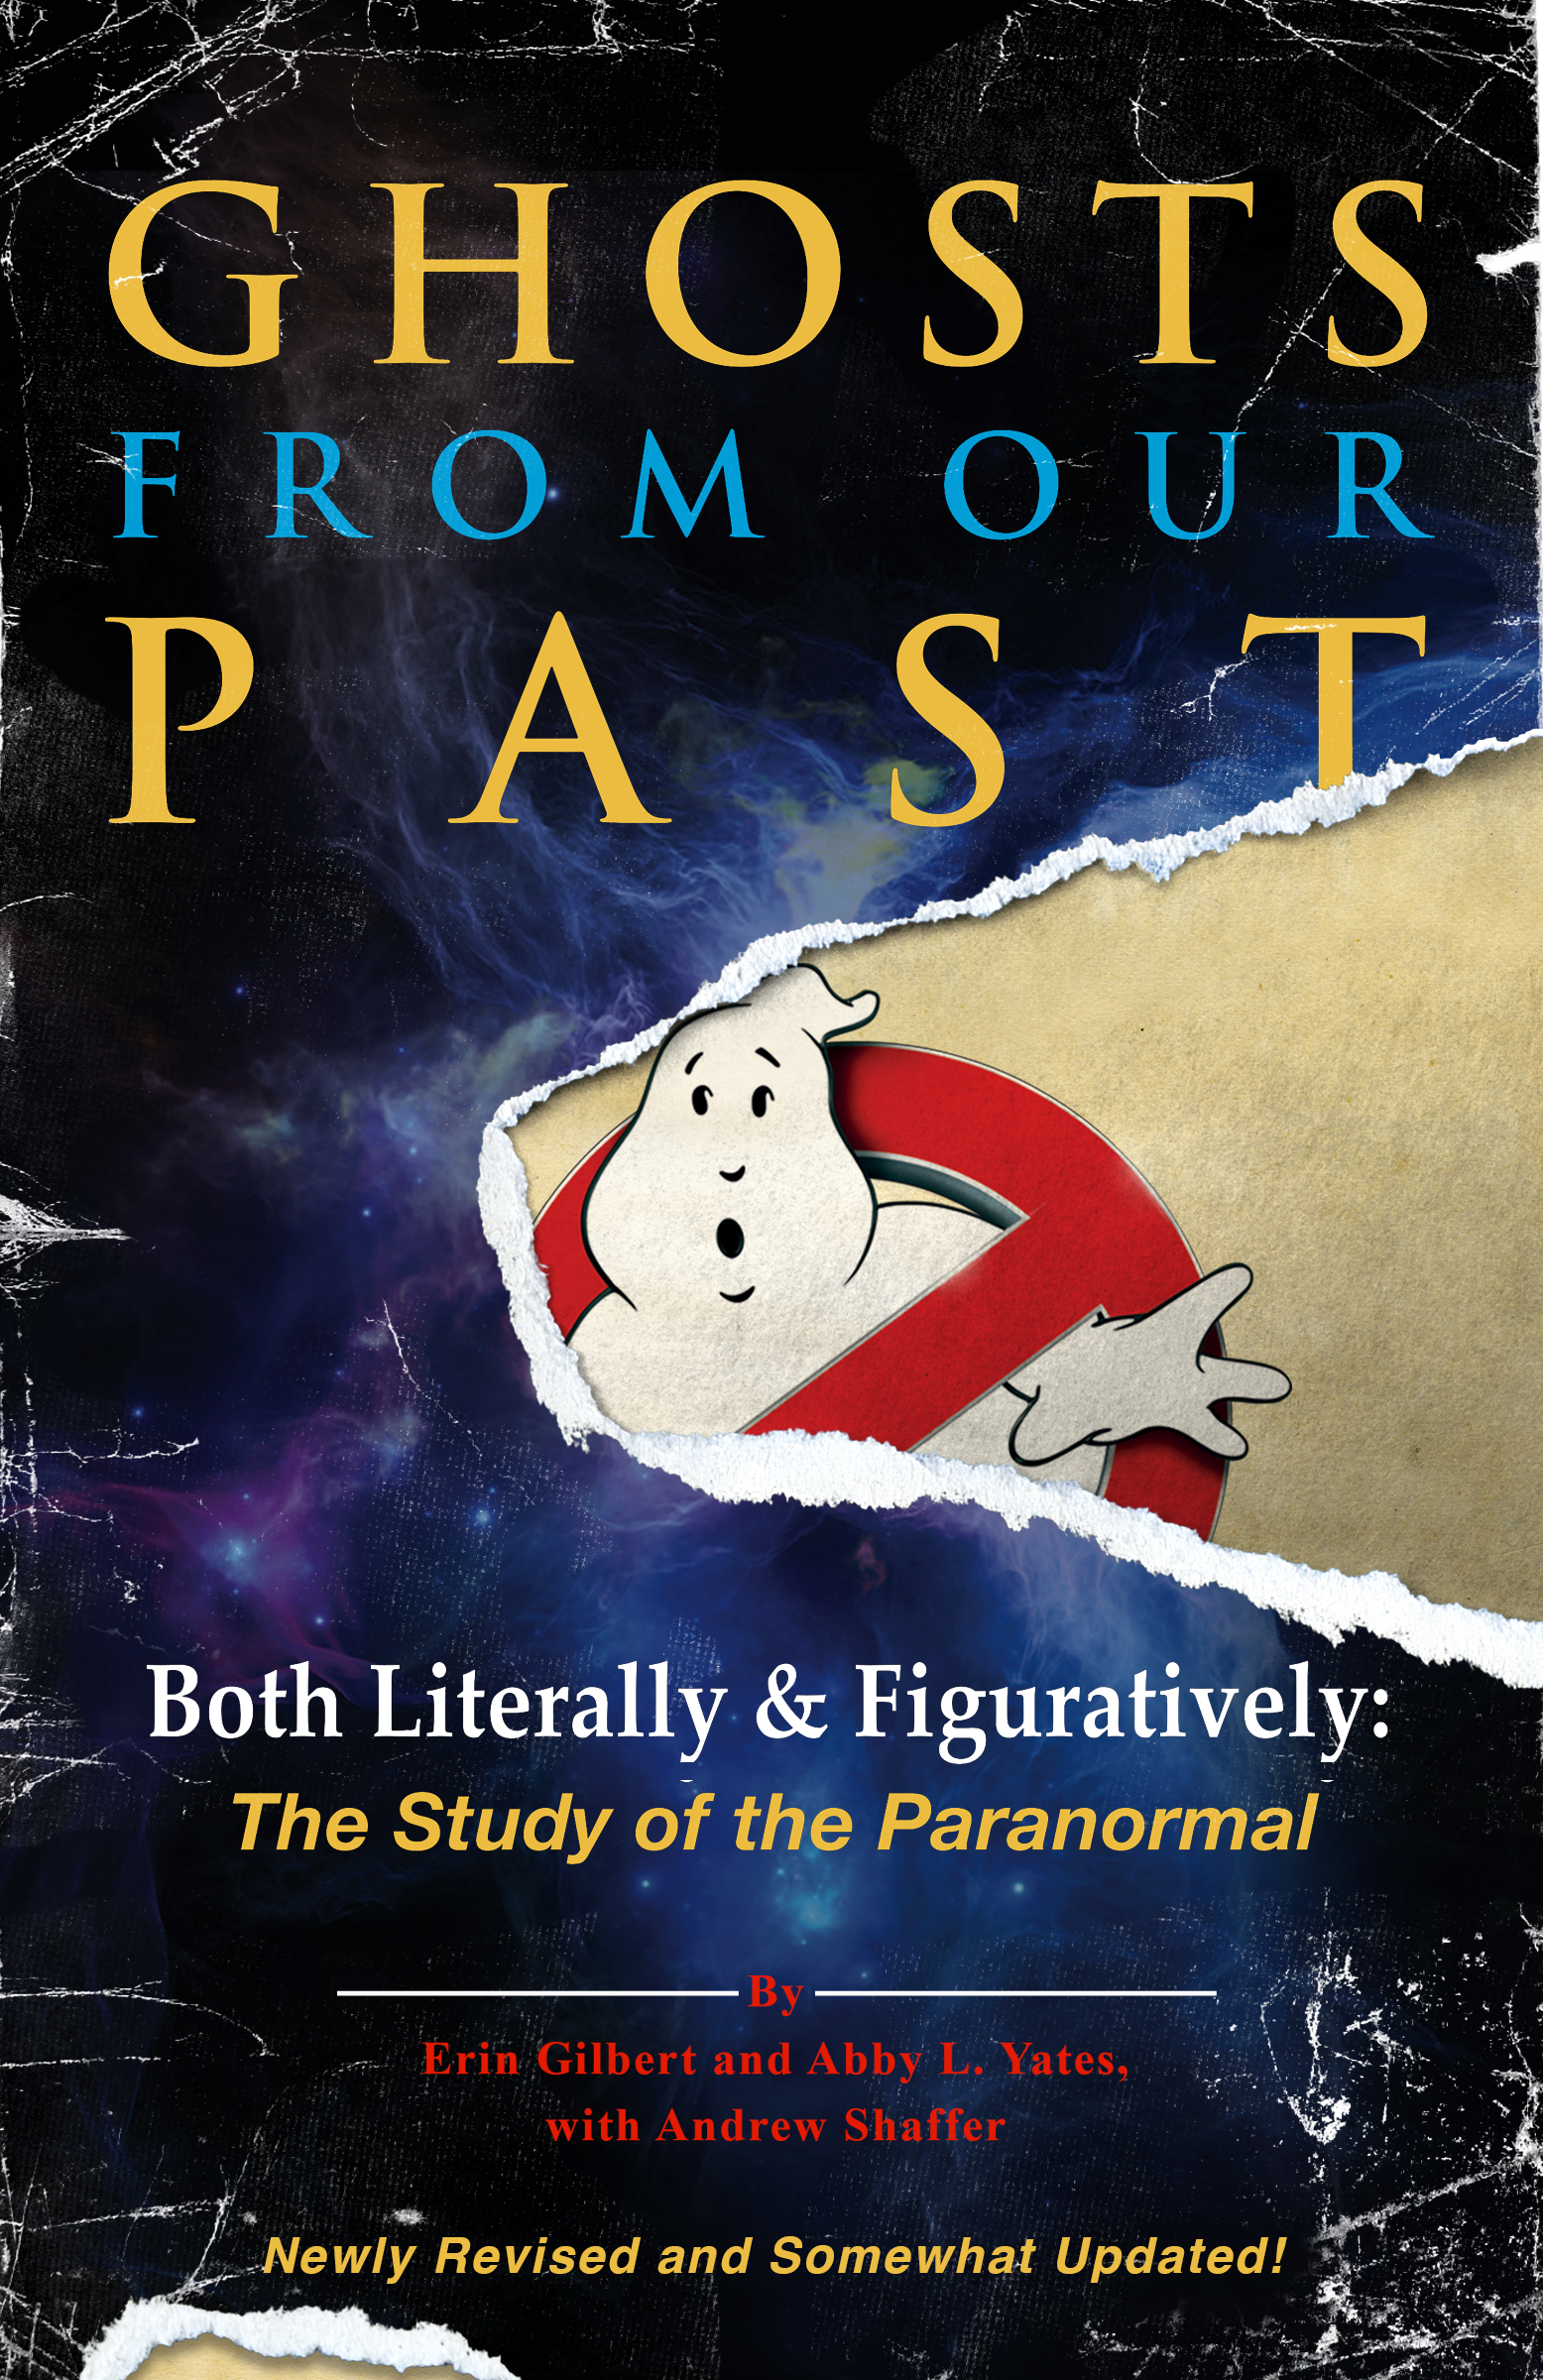 Ghoststudy.com | Uncyclopedia | FANDOM powered by Wikia